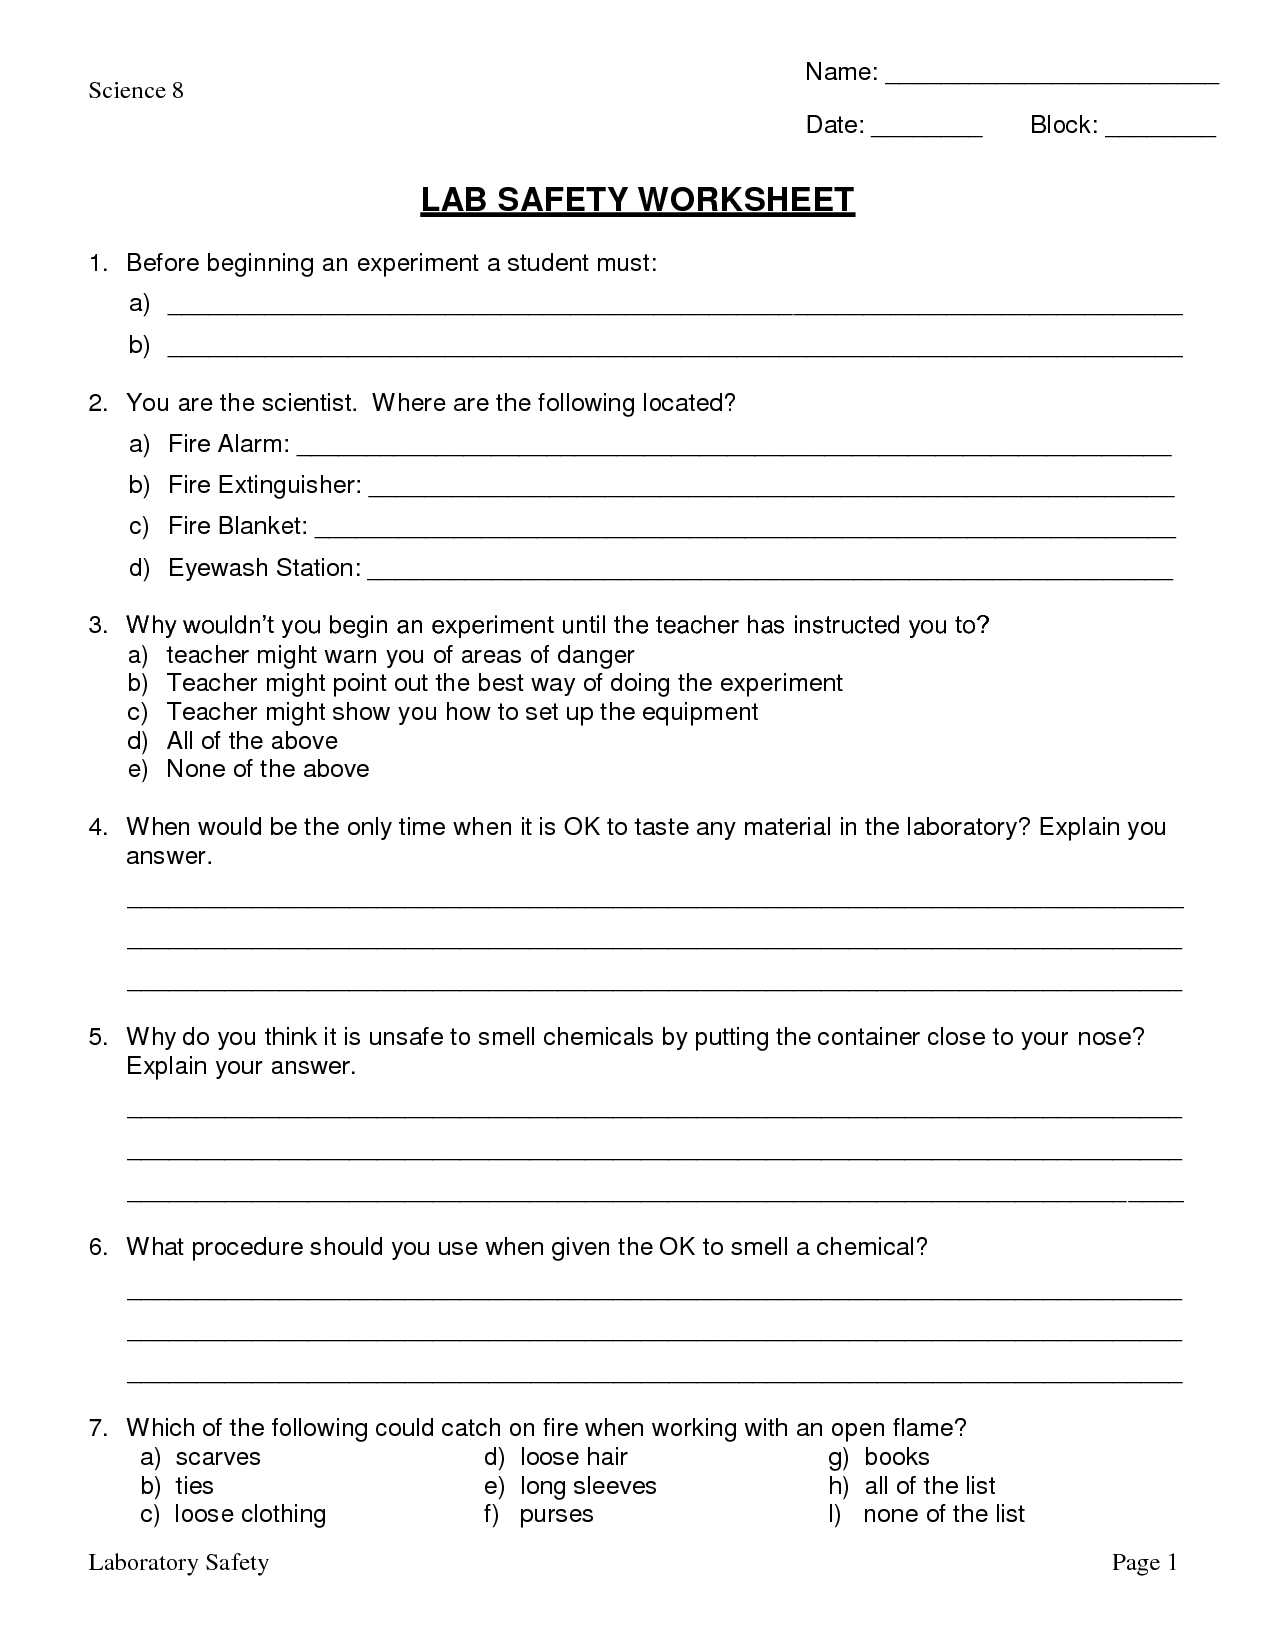 Worksheets Lab Safety Worksheets pin by zaiba ali on classroom pinterest lab safety see 6 best images of printable worksheet